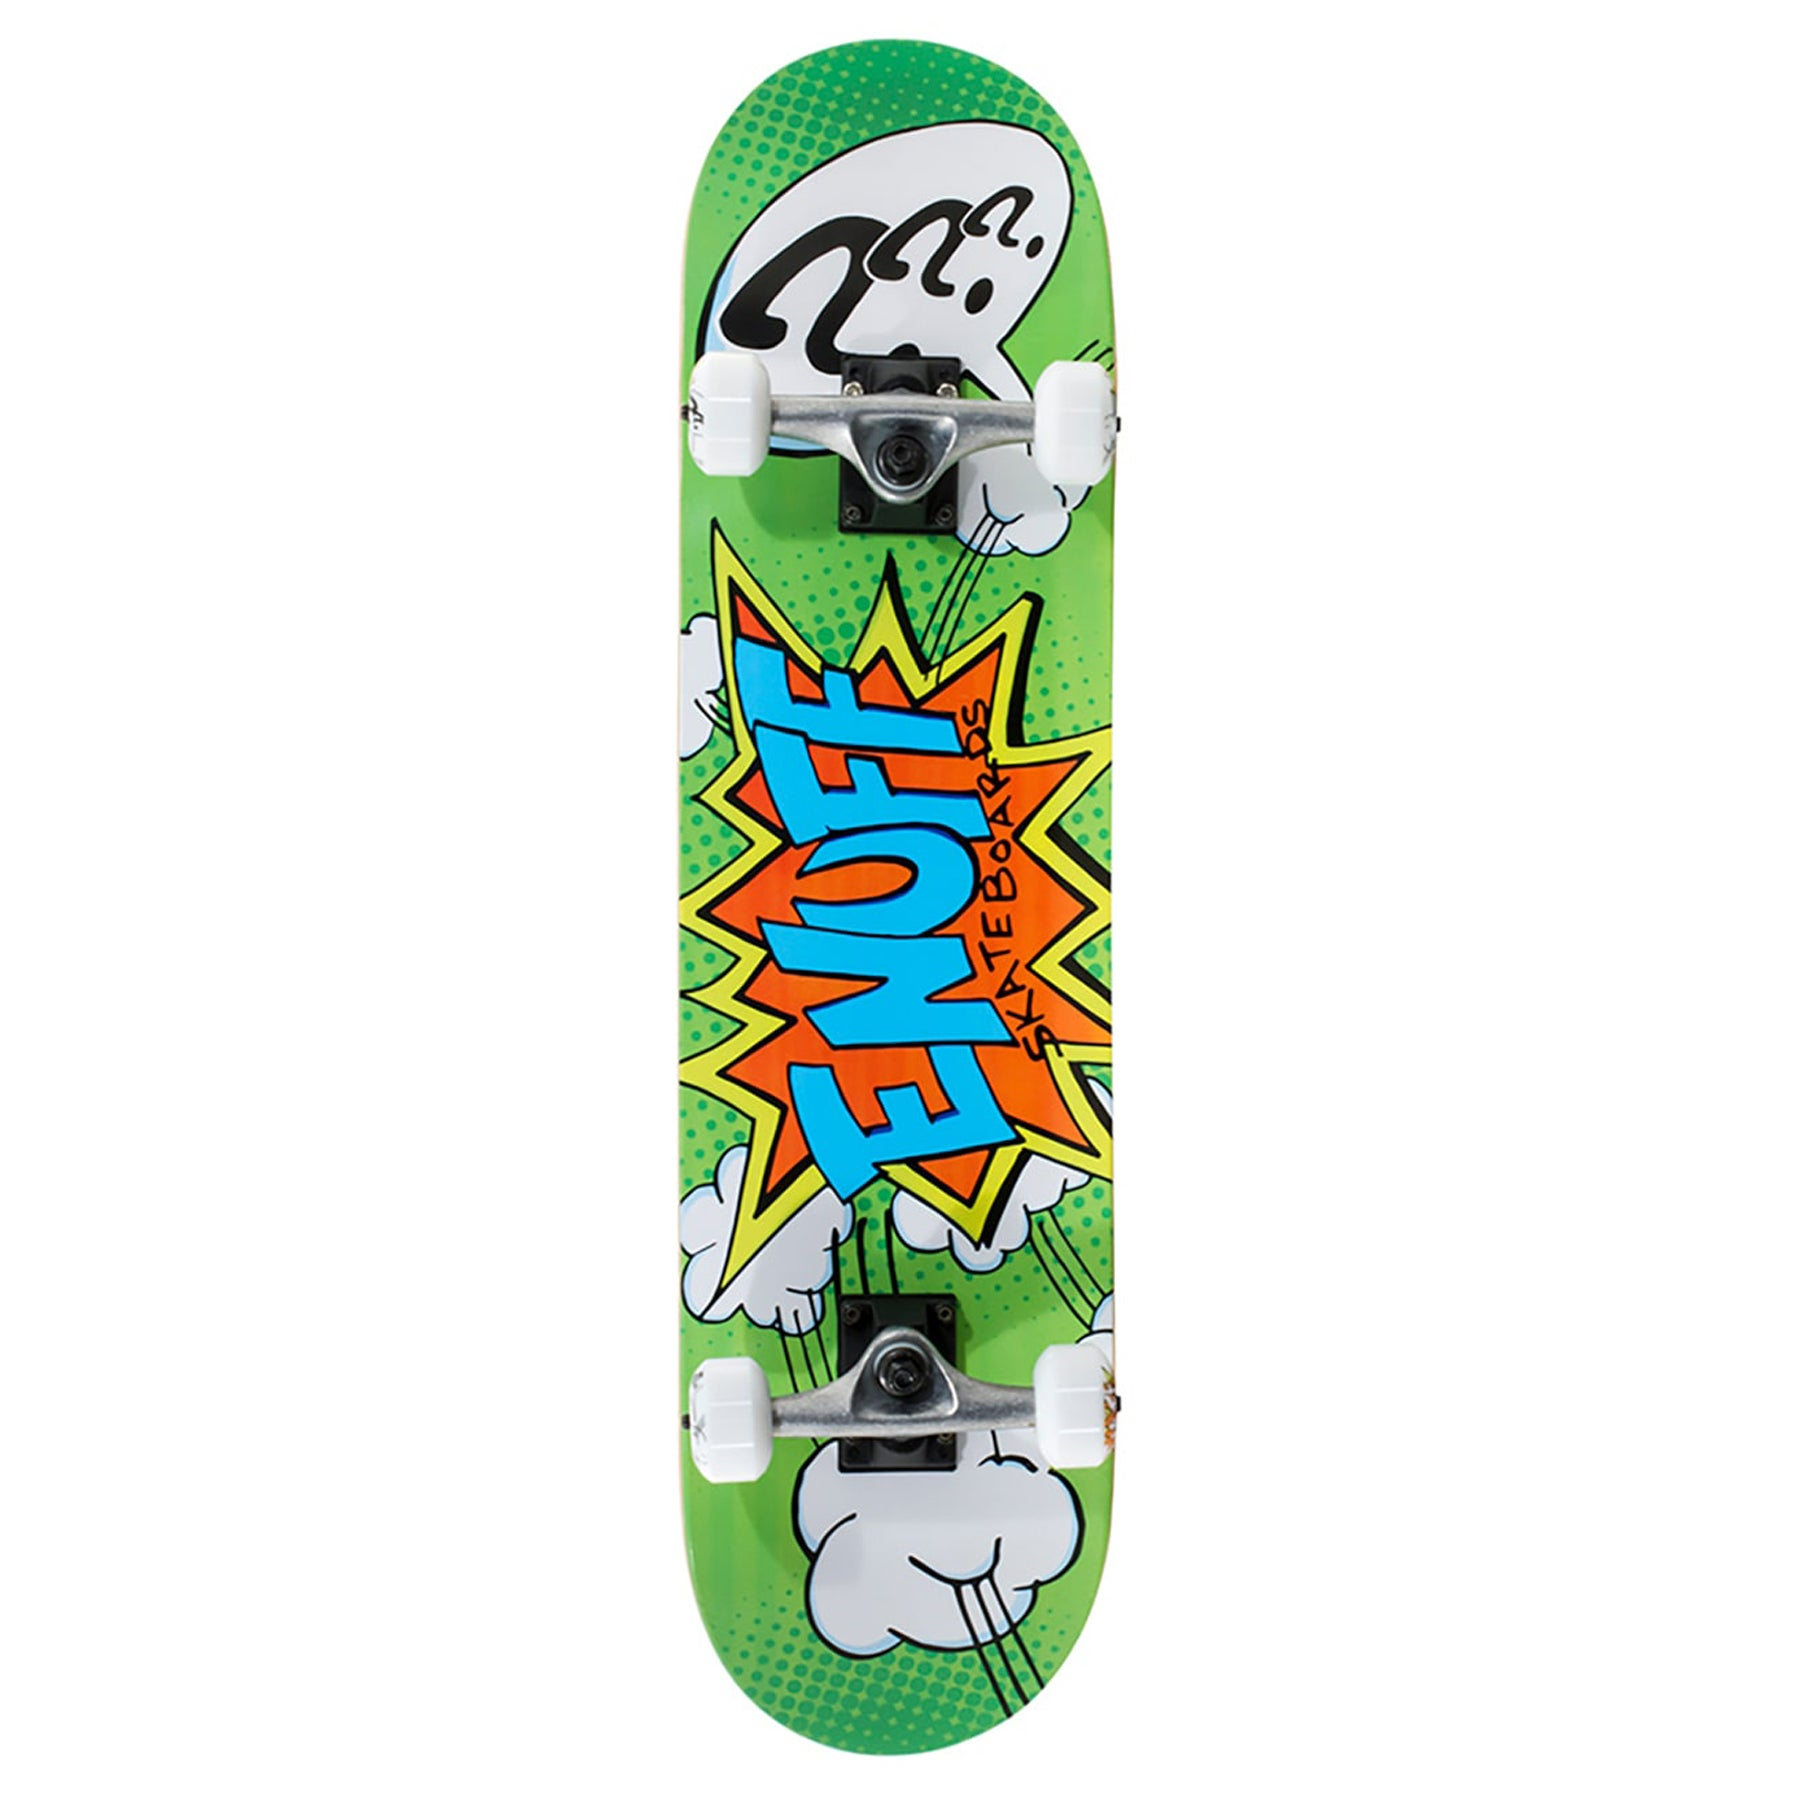 Enuff Pow ll Mini 7.25 Inch Skateboard - Green